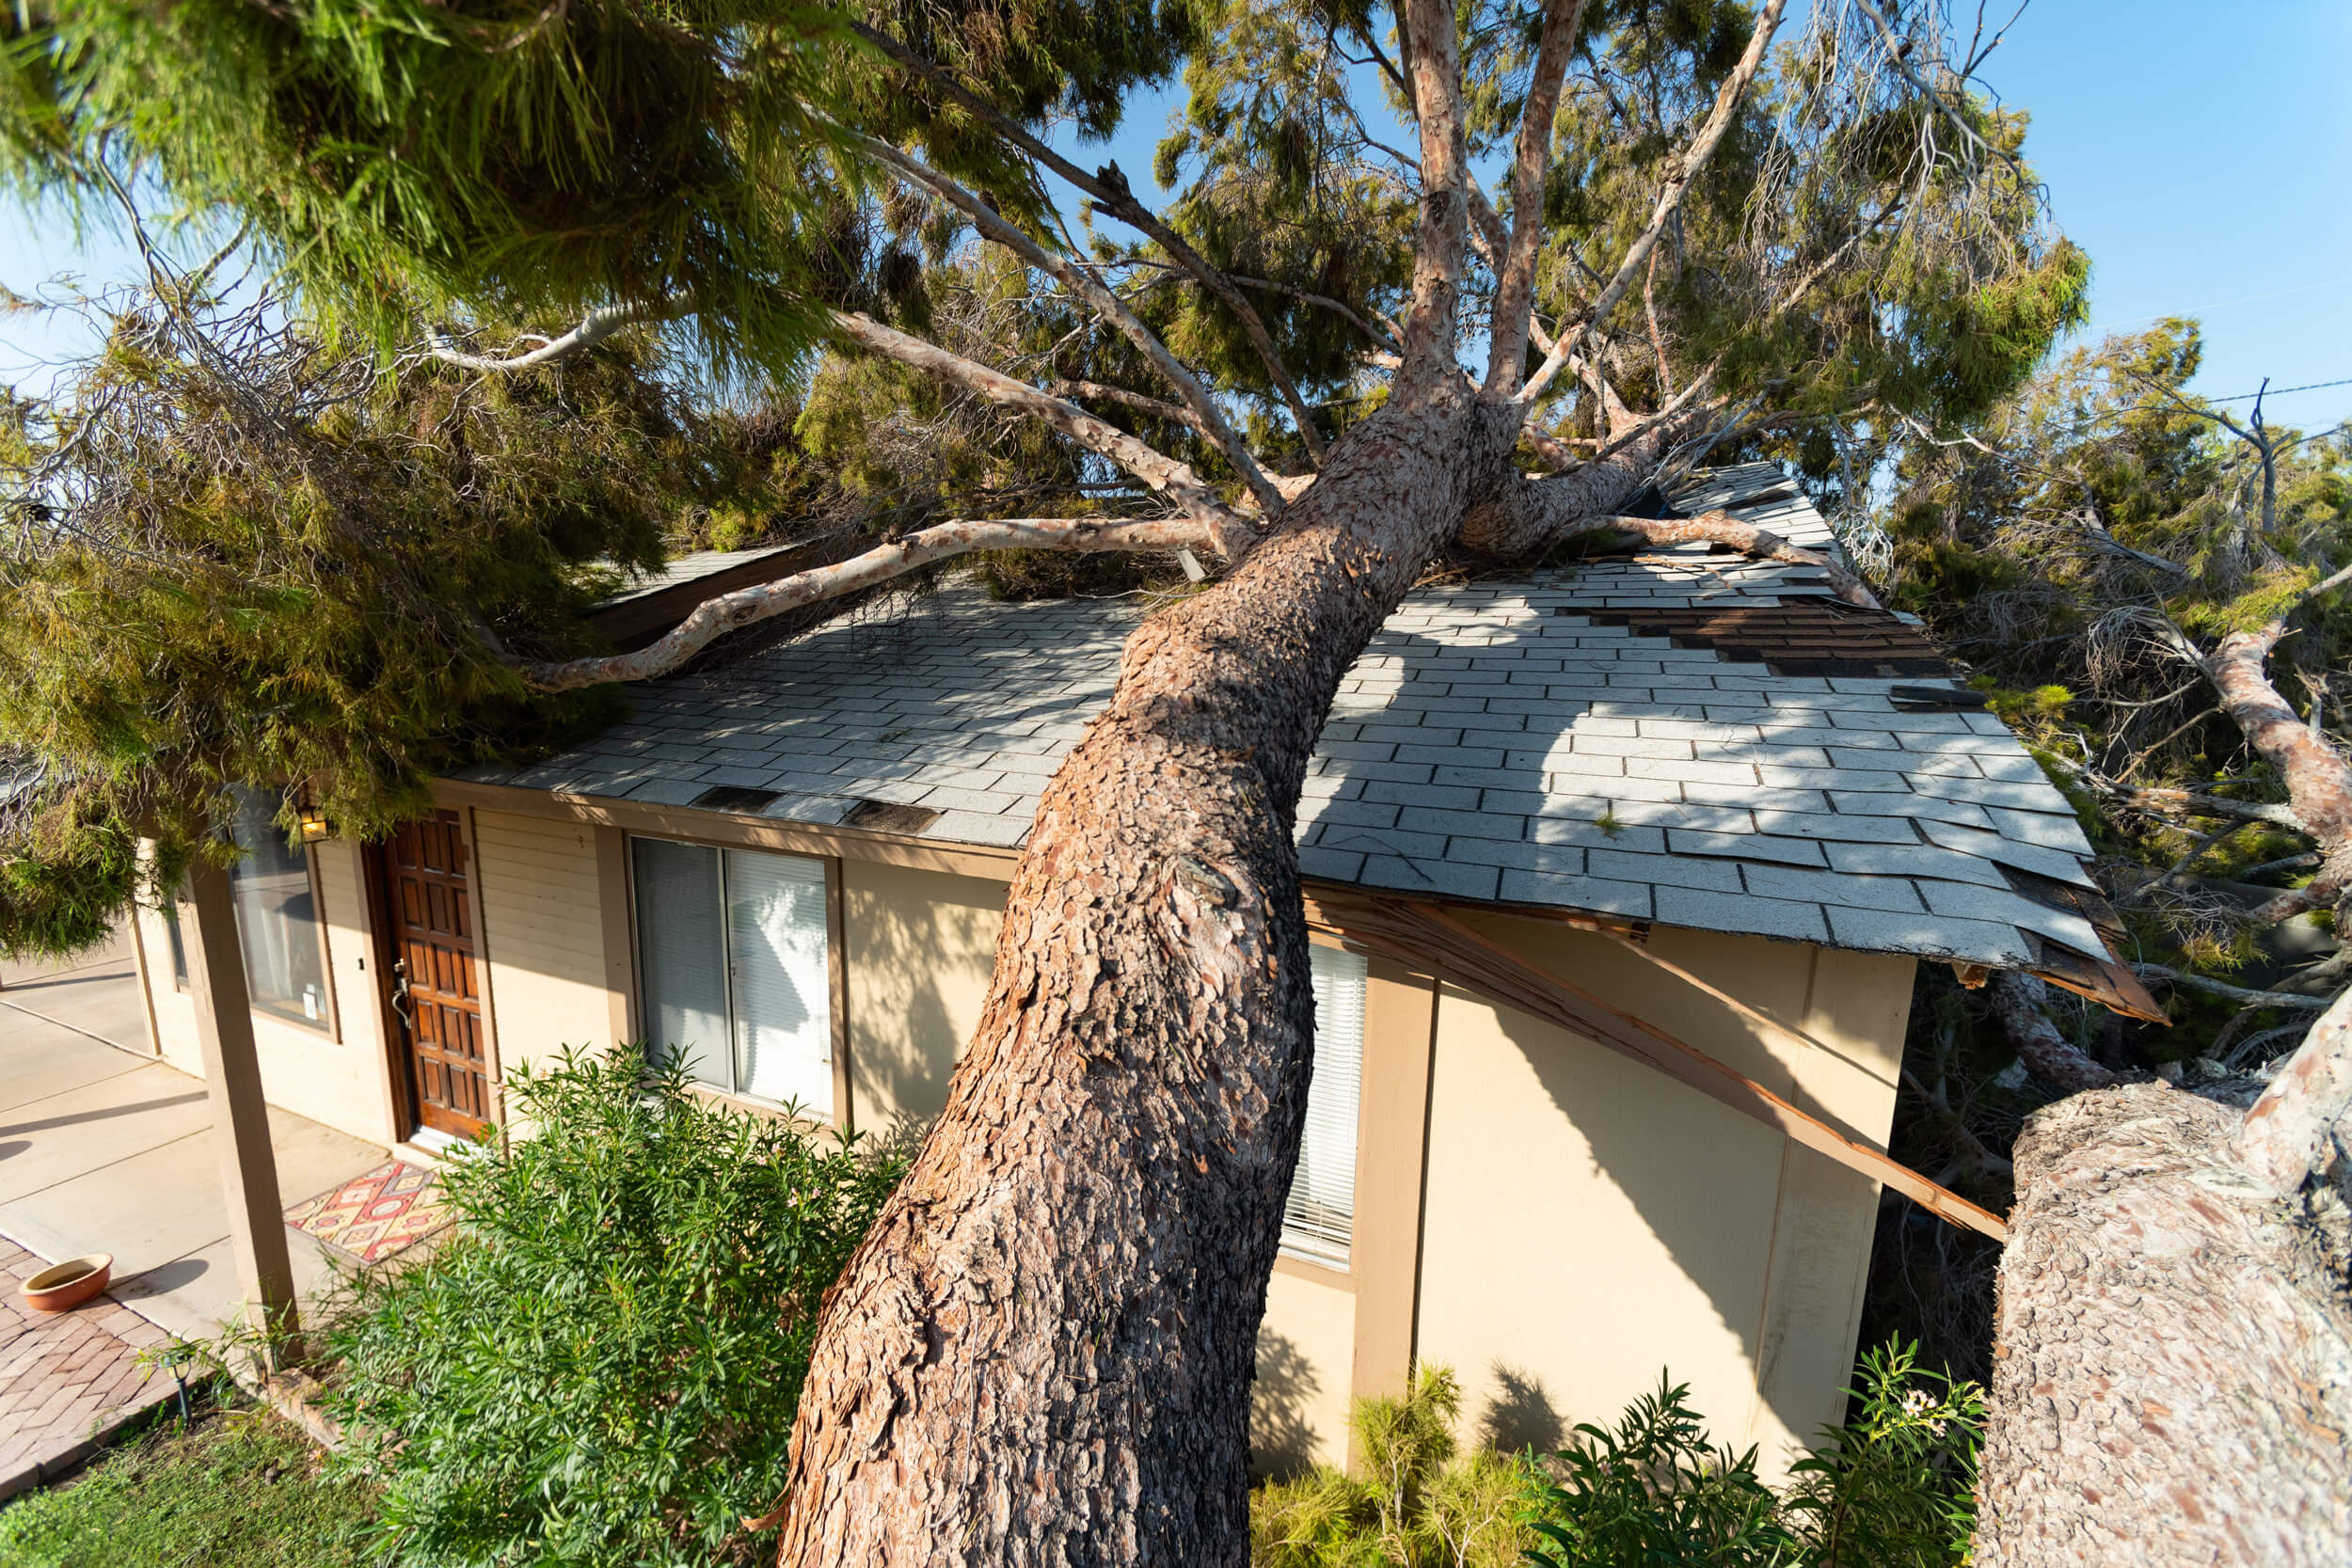 What You Need to Know About Filing an Insurance Claim for Property Damage